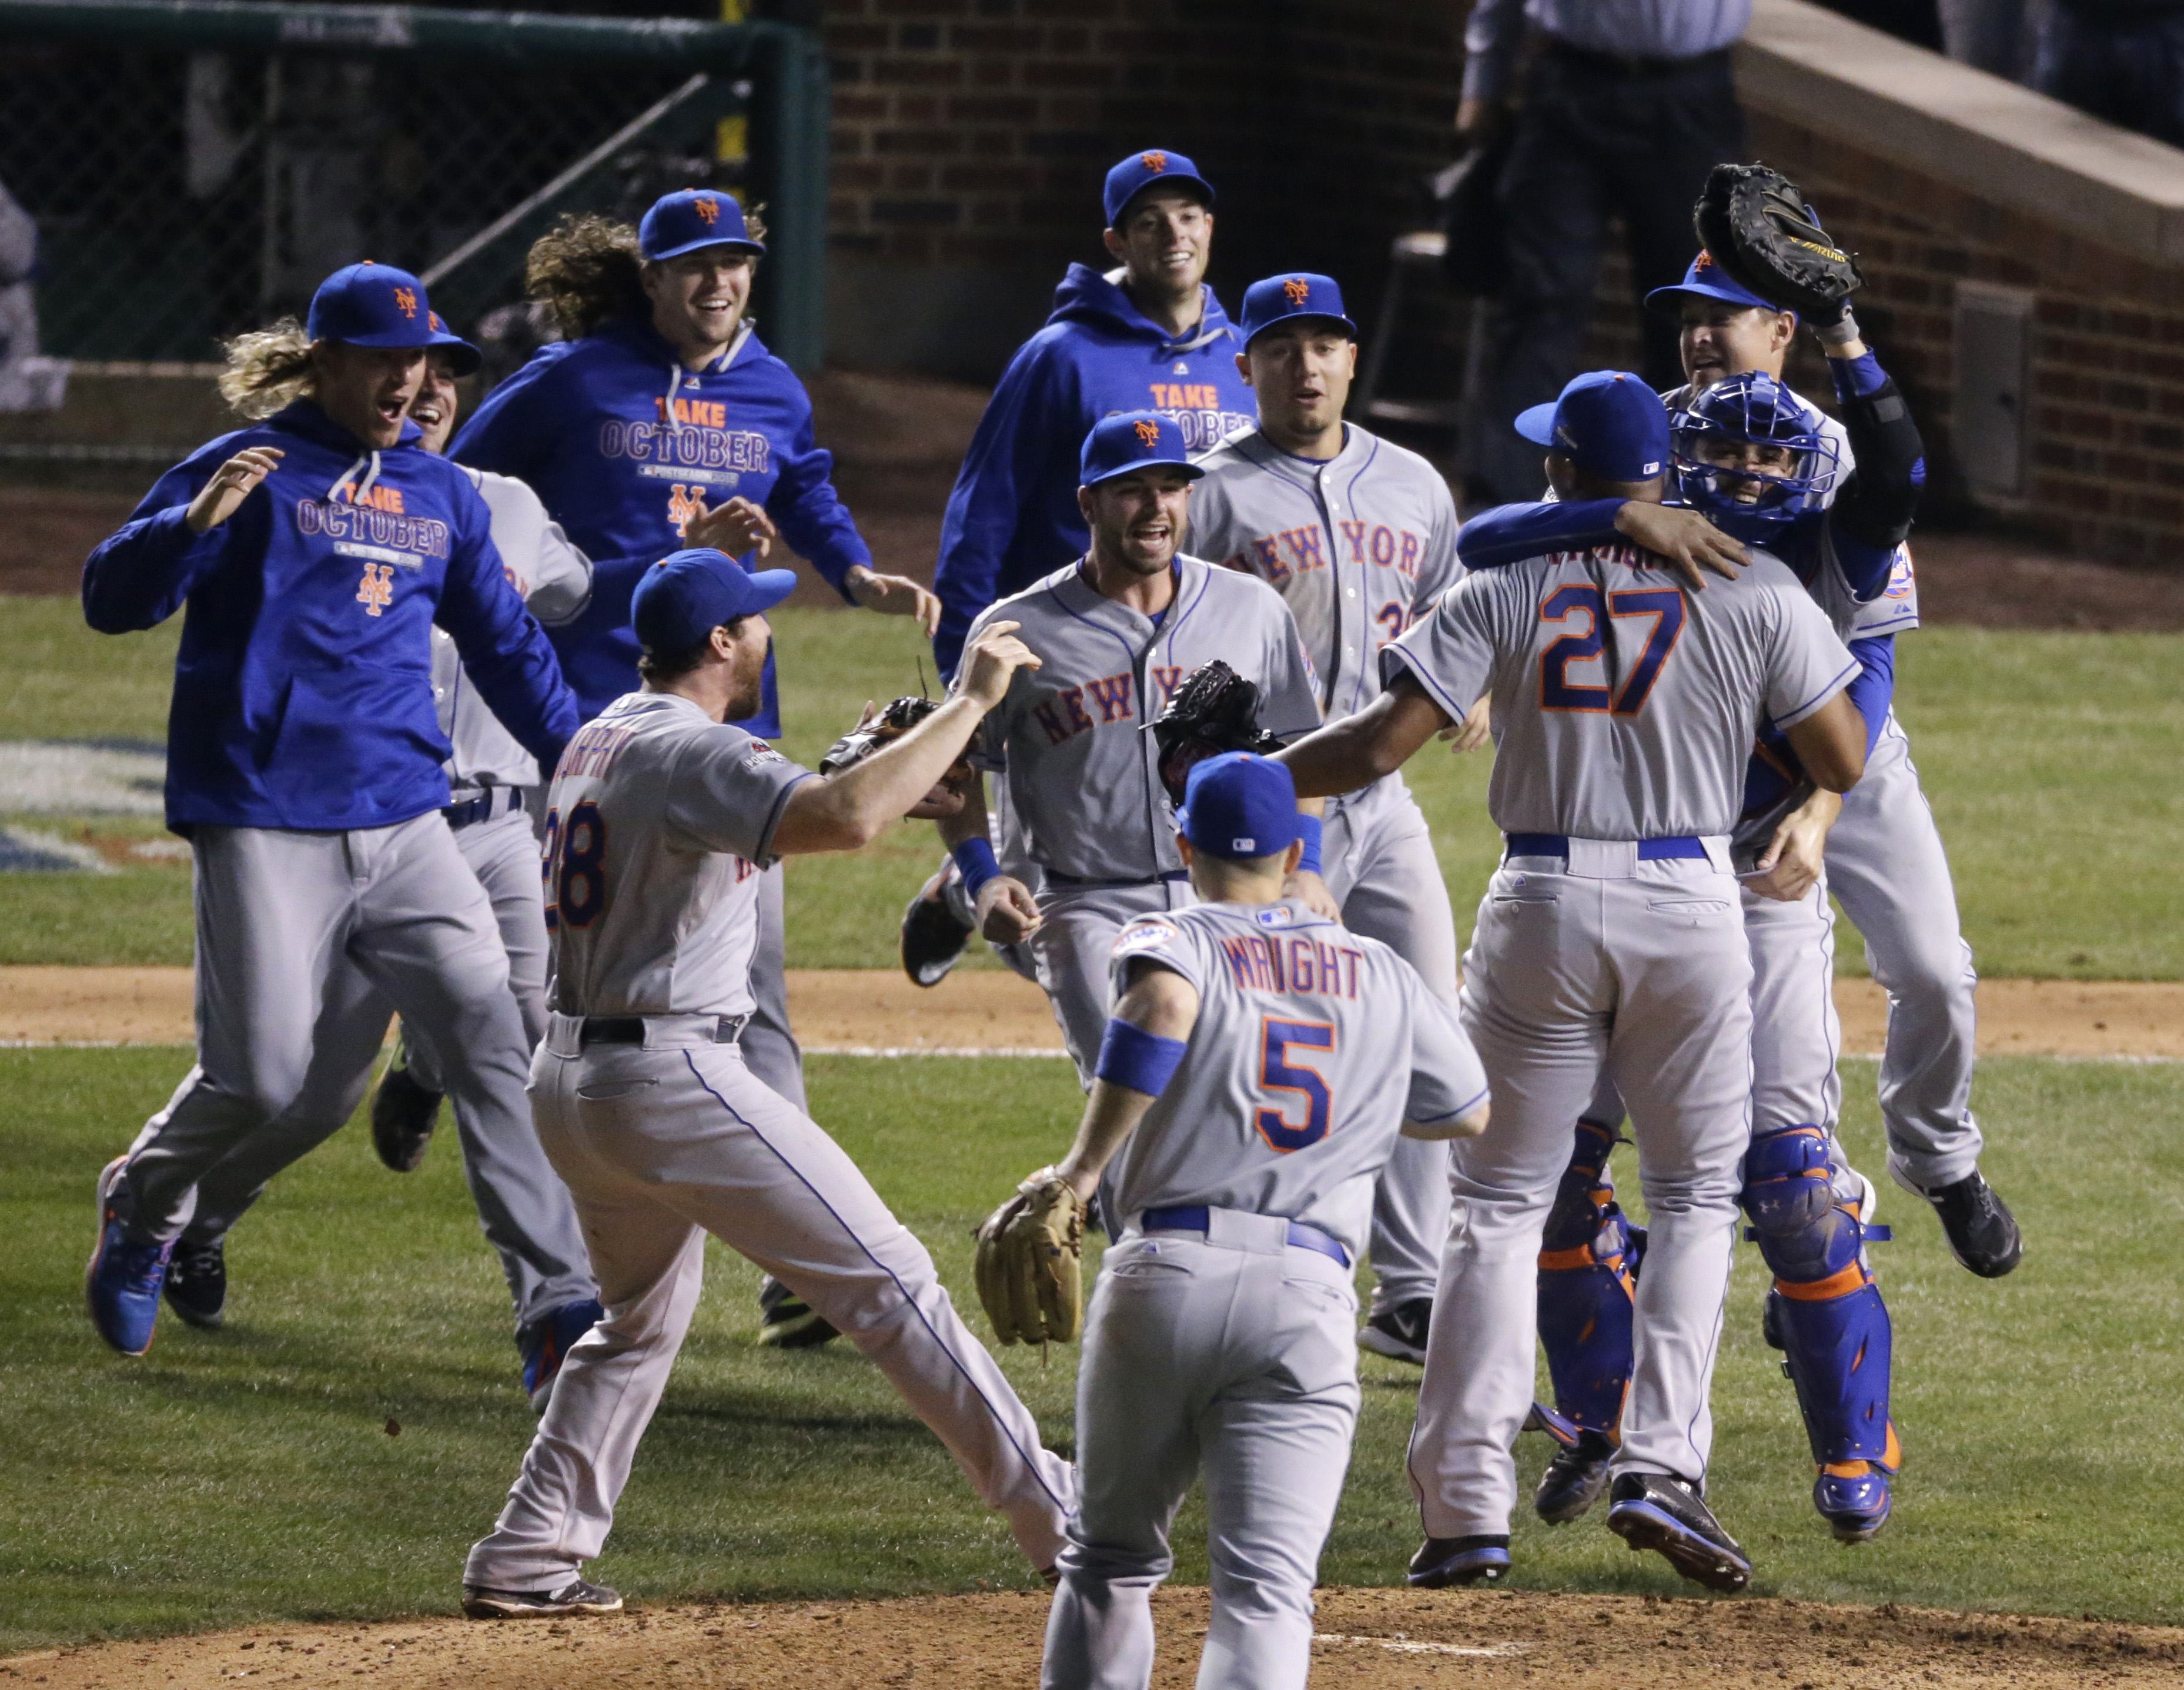 The New York Mets celebrate after Game 4 of the National League baseball championship series against the Chicago Cubs Wednesday, Oct. 21, 2015, in Chicago. The Mets won 8-3 to advance to the World Series. (AP Photo/David Goldman)